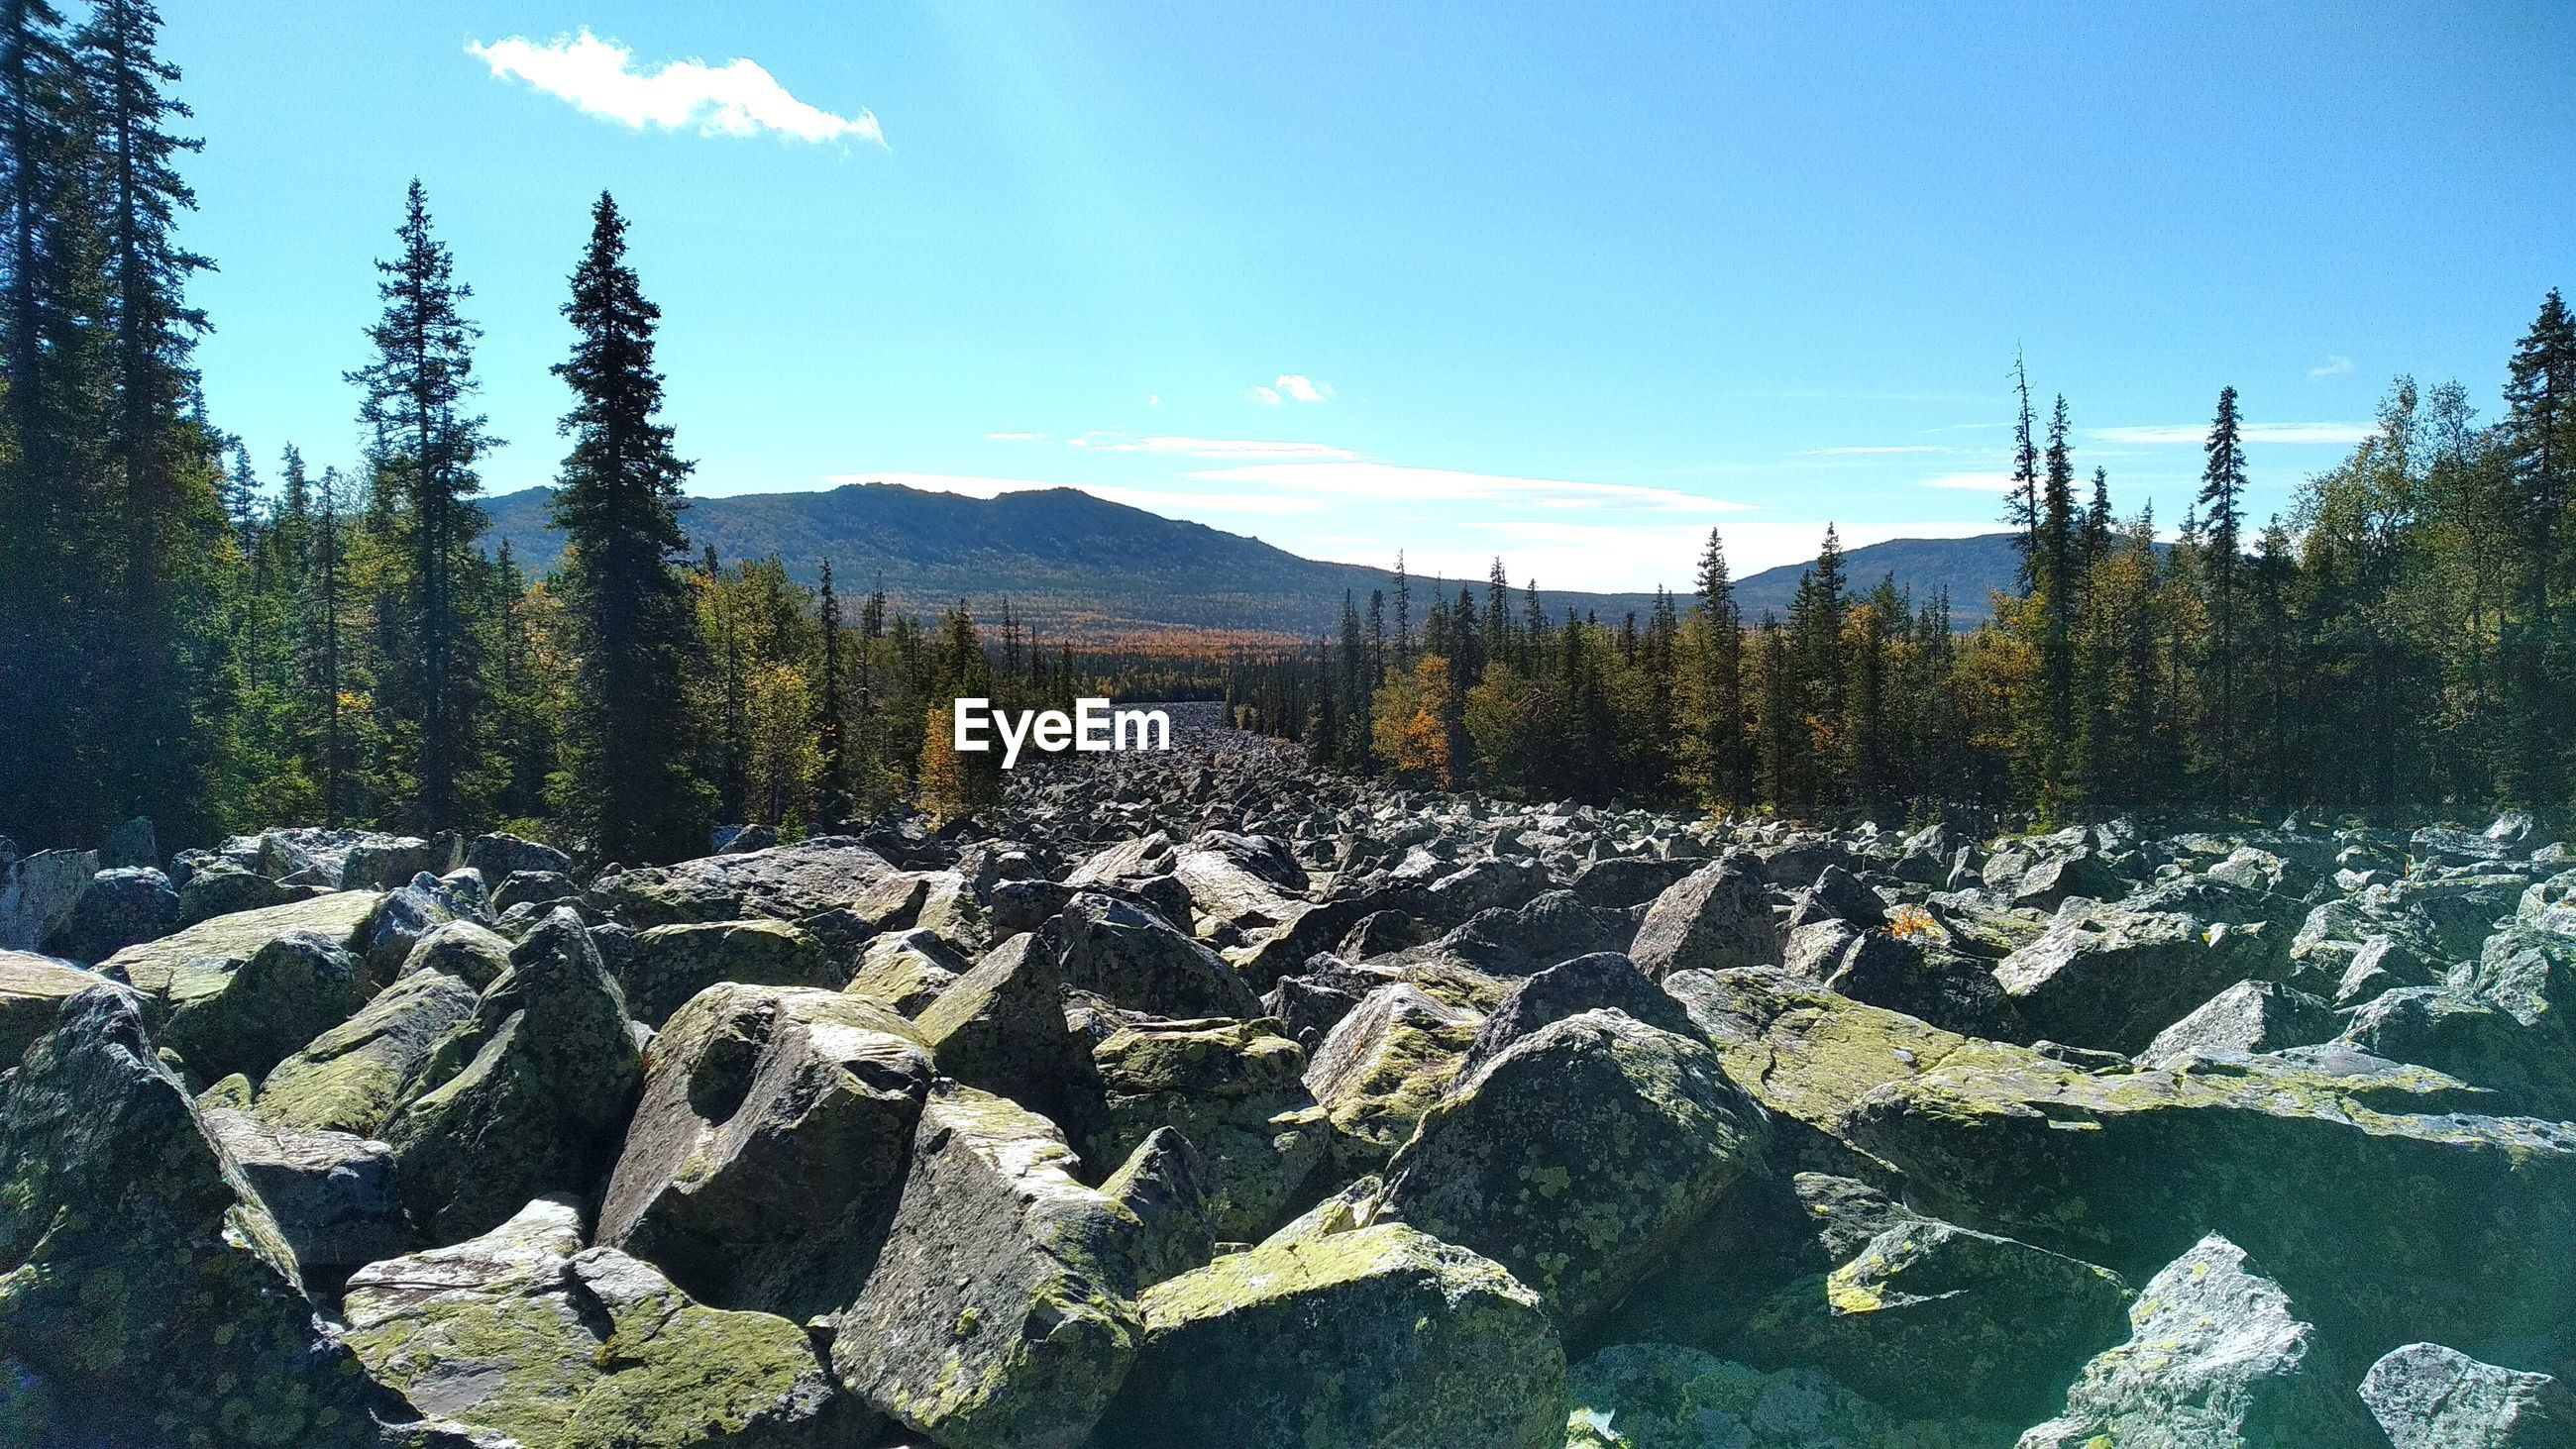 PANORAMIC VIEW OF ROCKS AND TREES IN FOREST